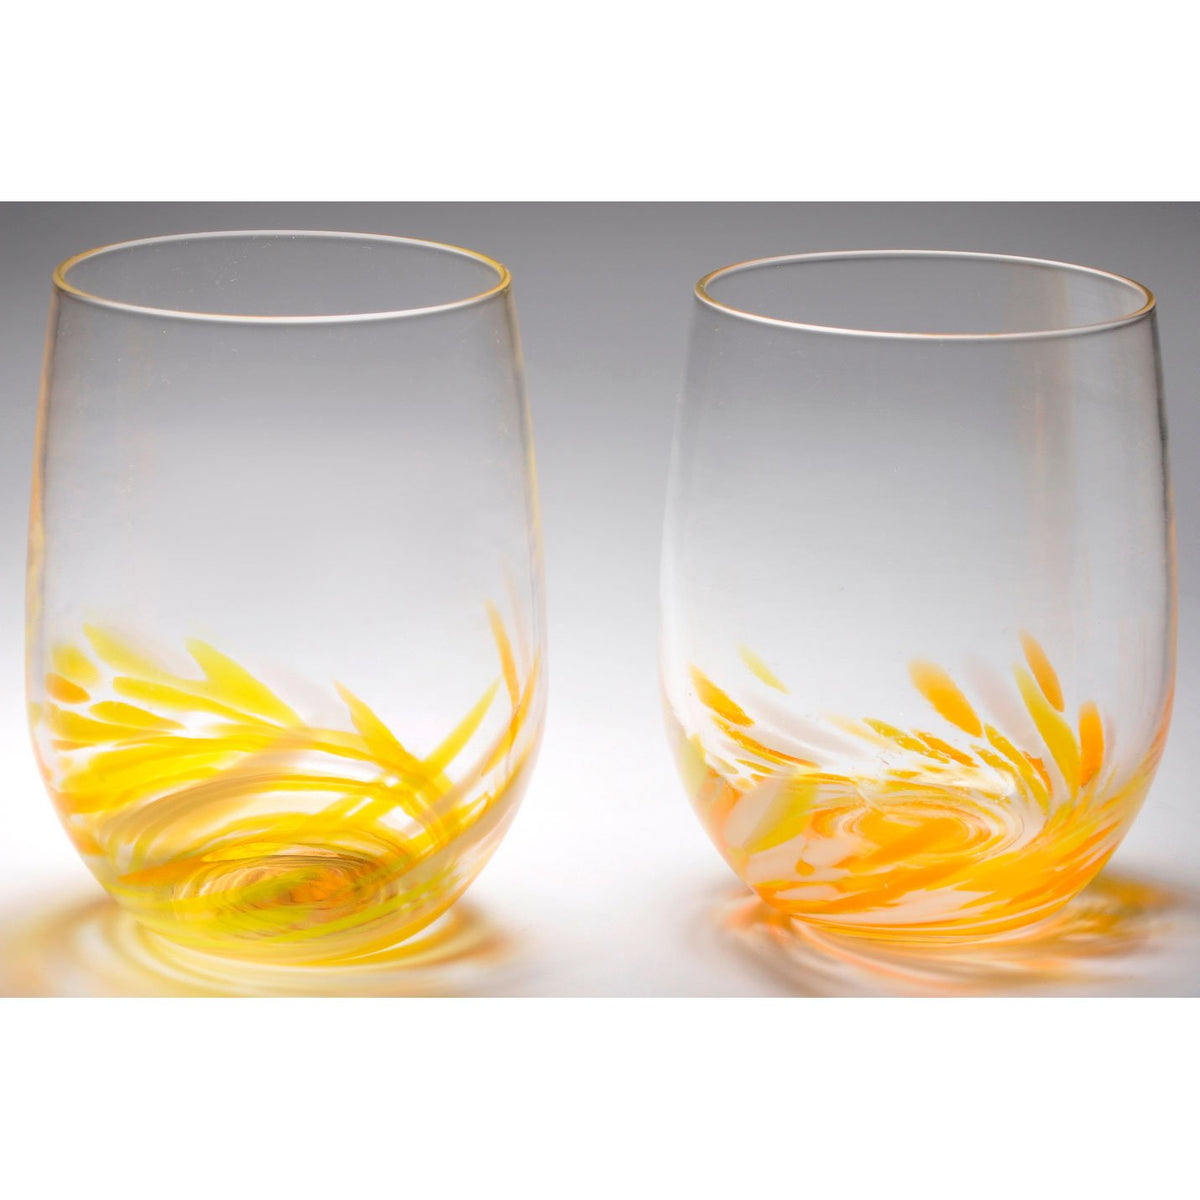 f342a815da3 The Furnace Glassworks Vino Breve Glasses Shown In Yellow Functional  Artisan Handblown Art Glass Glasses – Sweetheart Gallery: Contemporary  Craft Gallery, ...